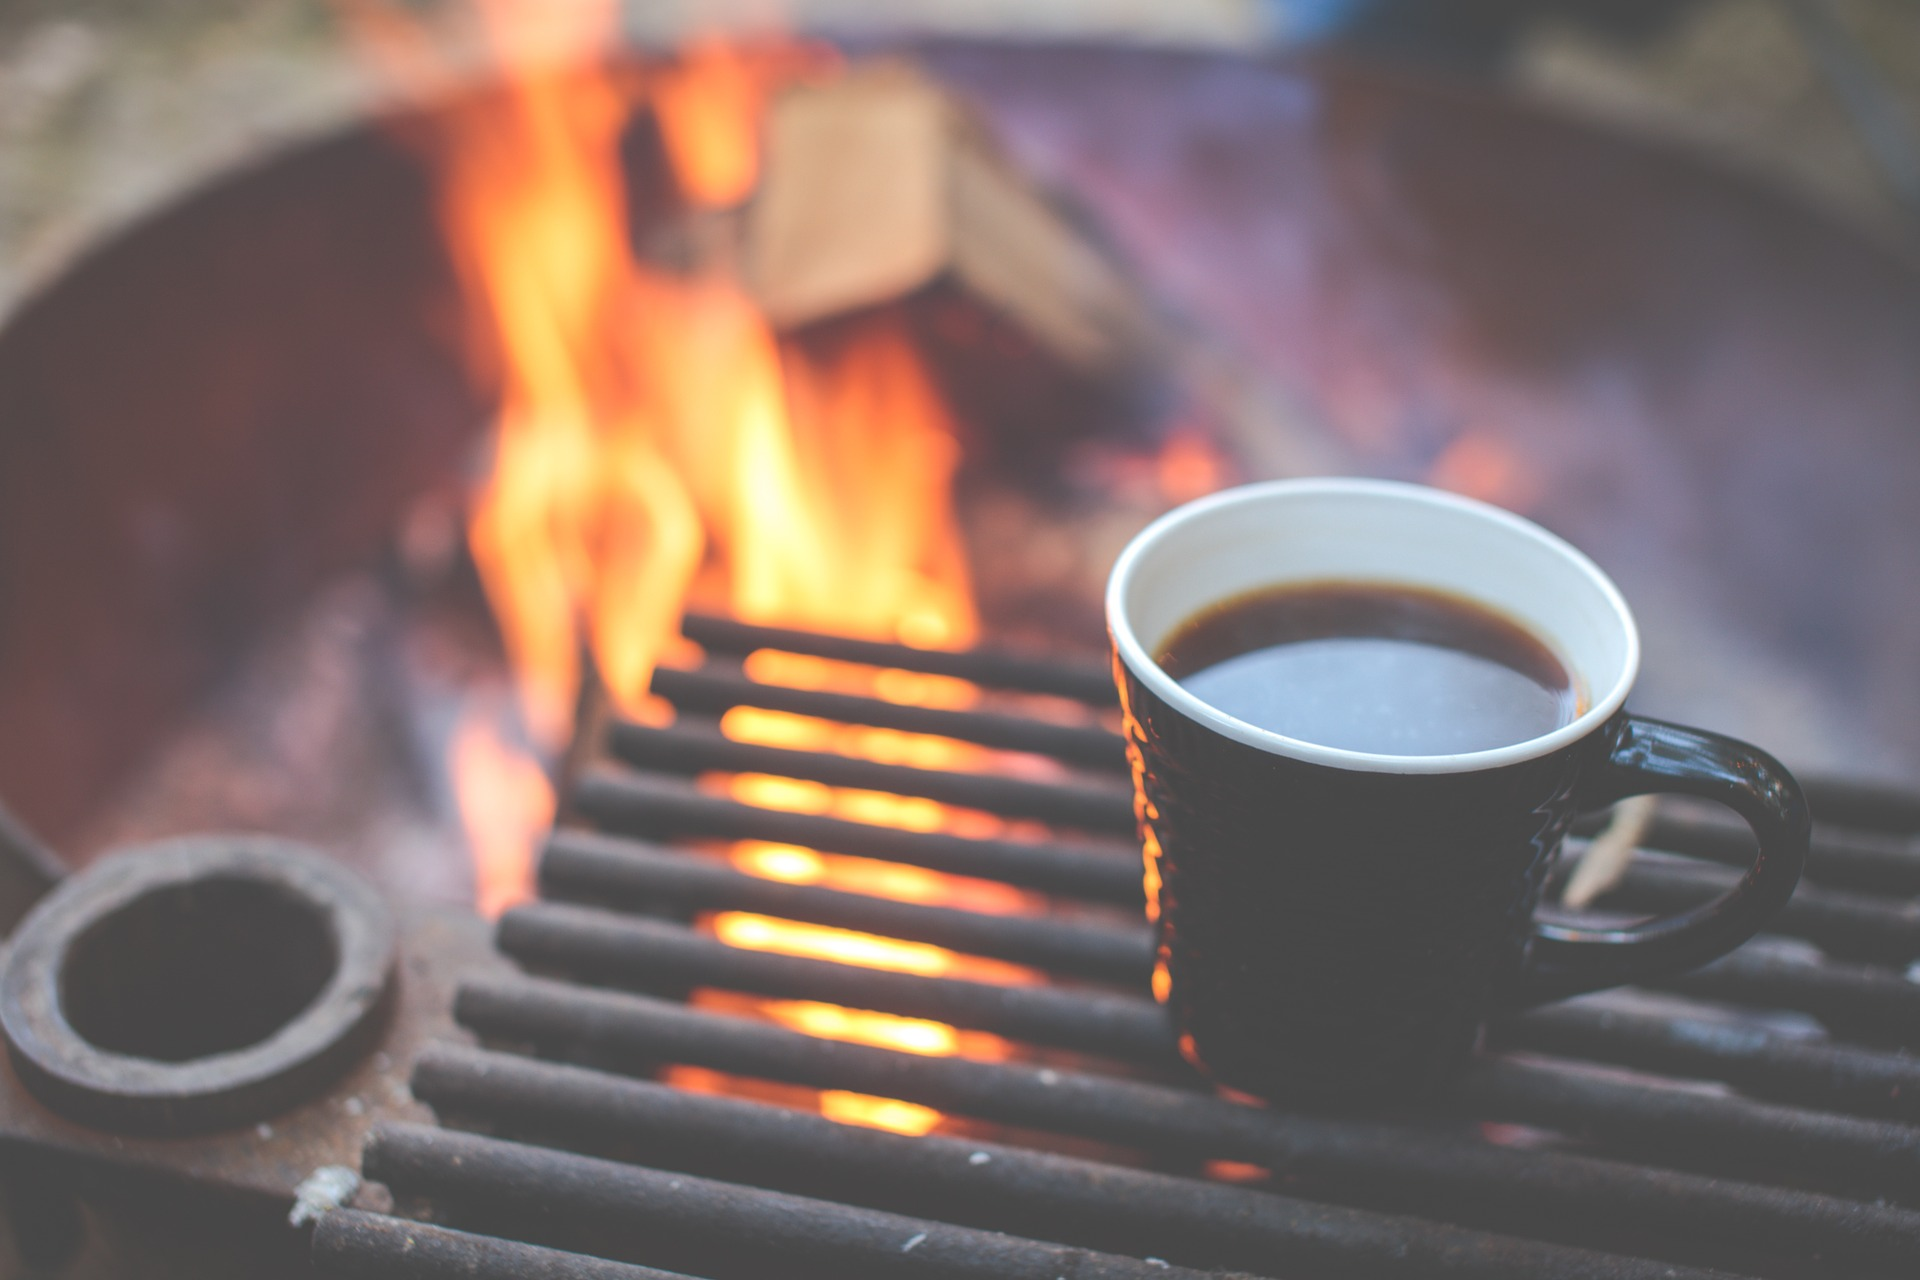 How to make great camp coffee